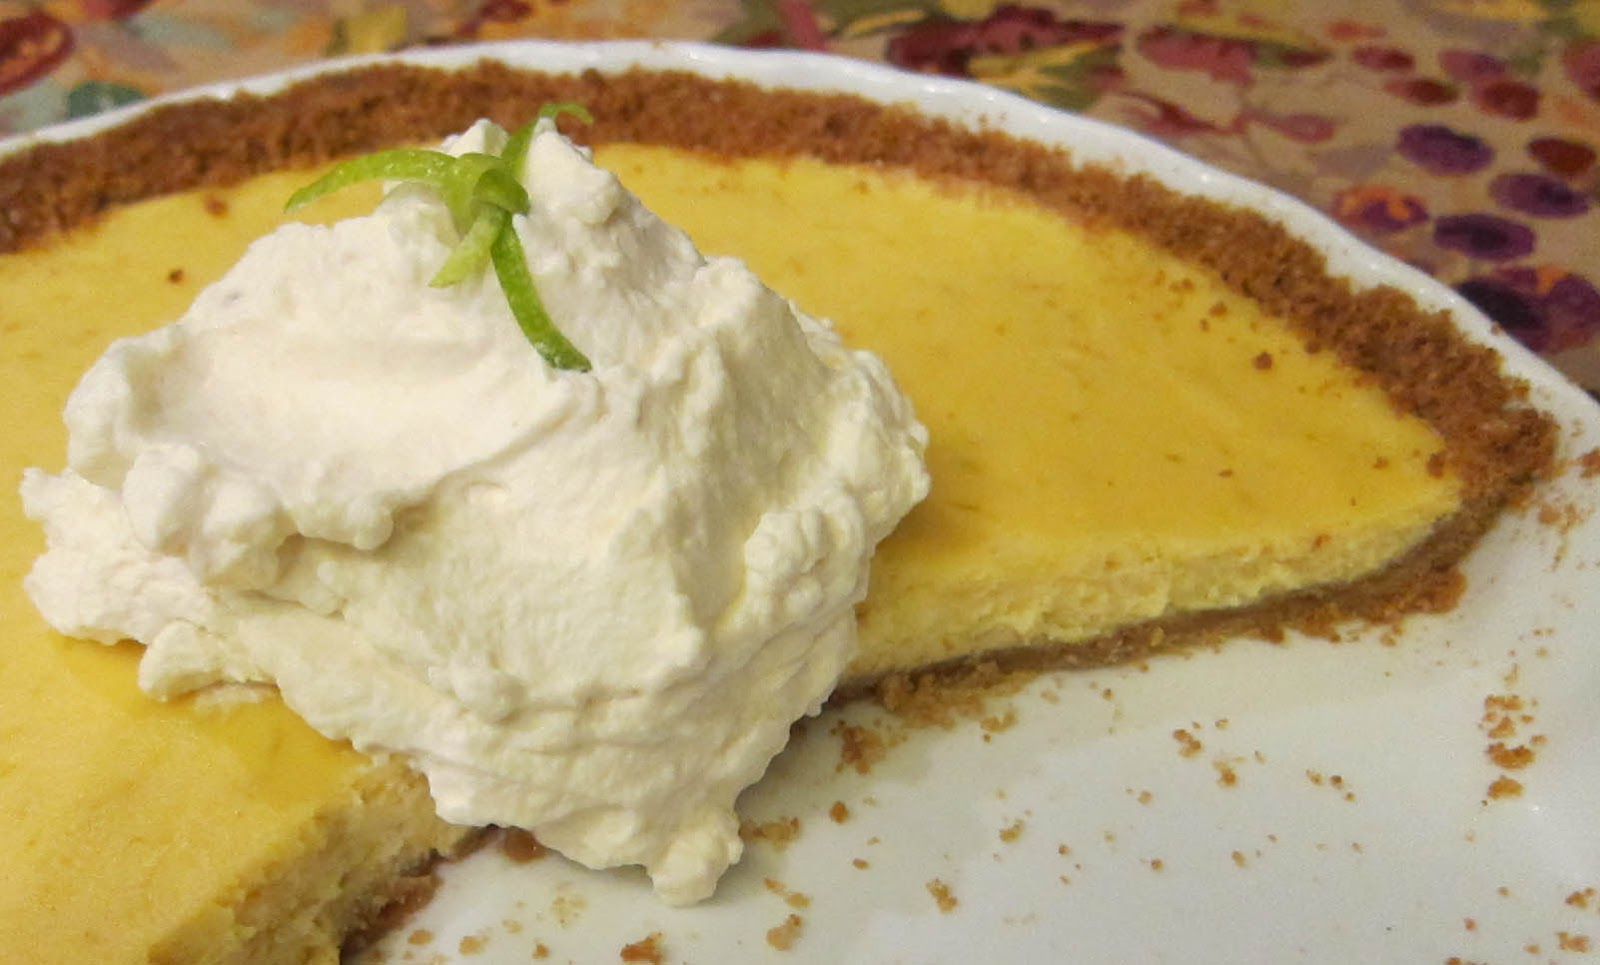 School Diaries: Creamy Lime Ricotta Tart with a Gingersnap Crust ...